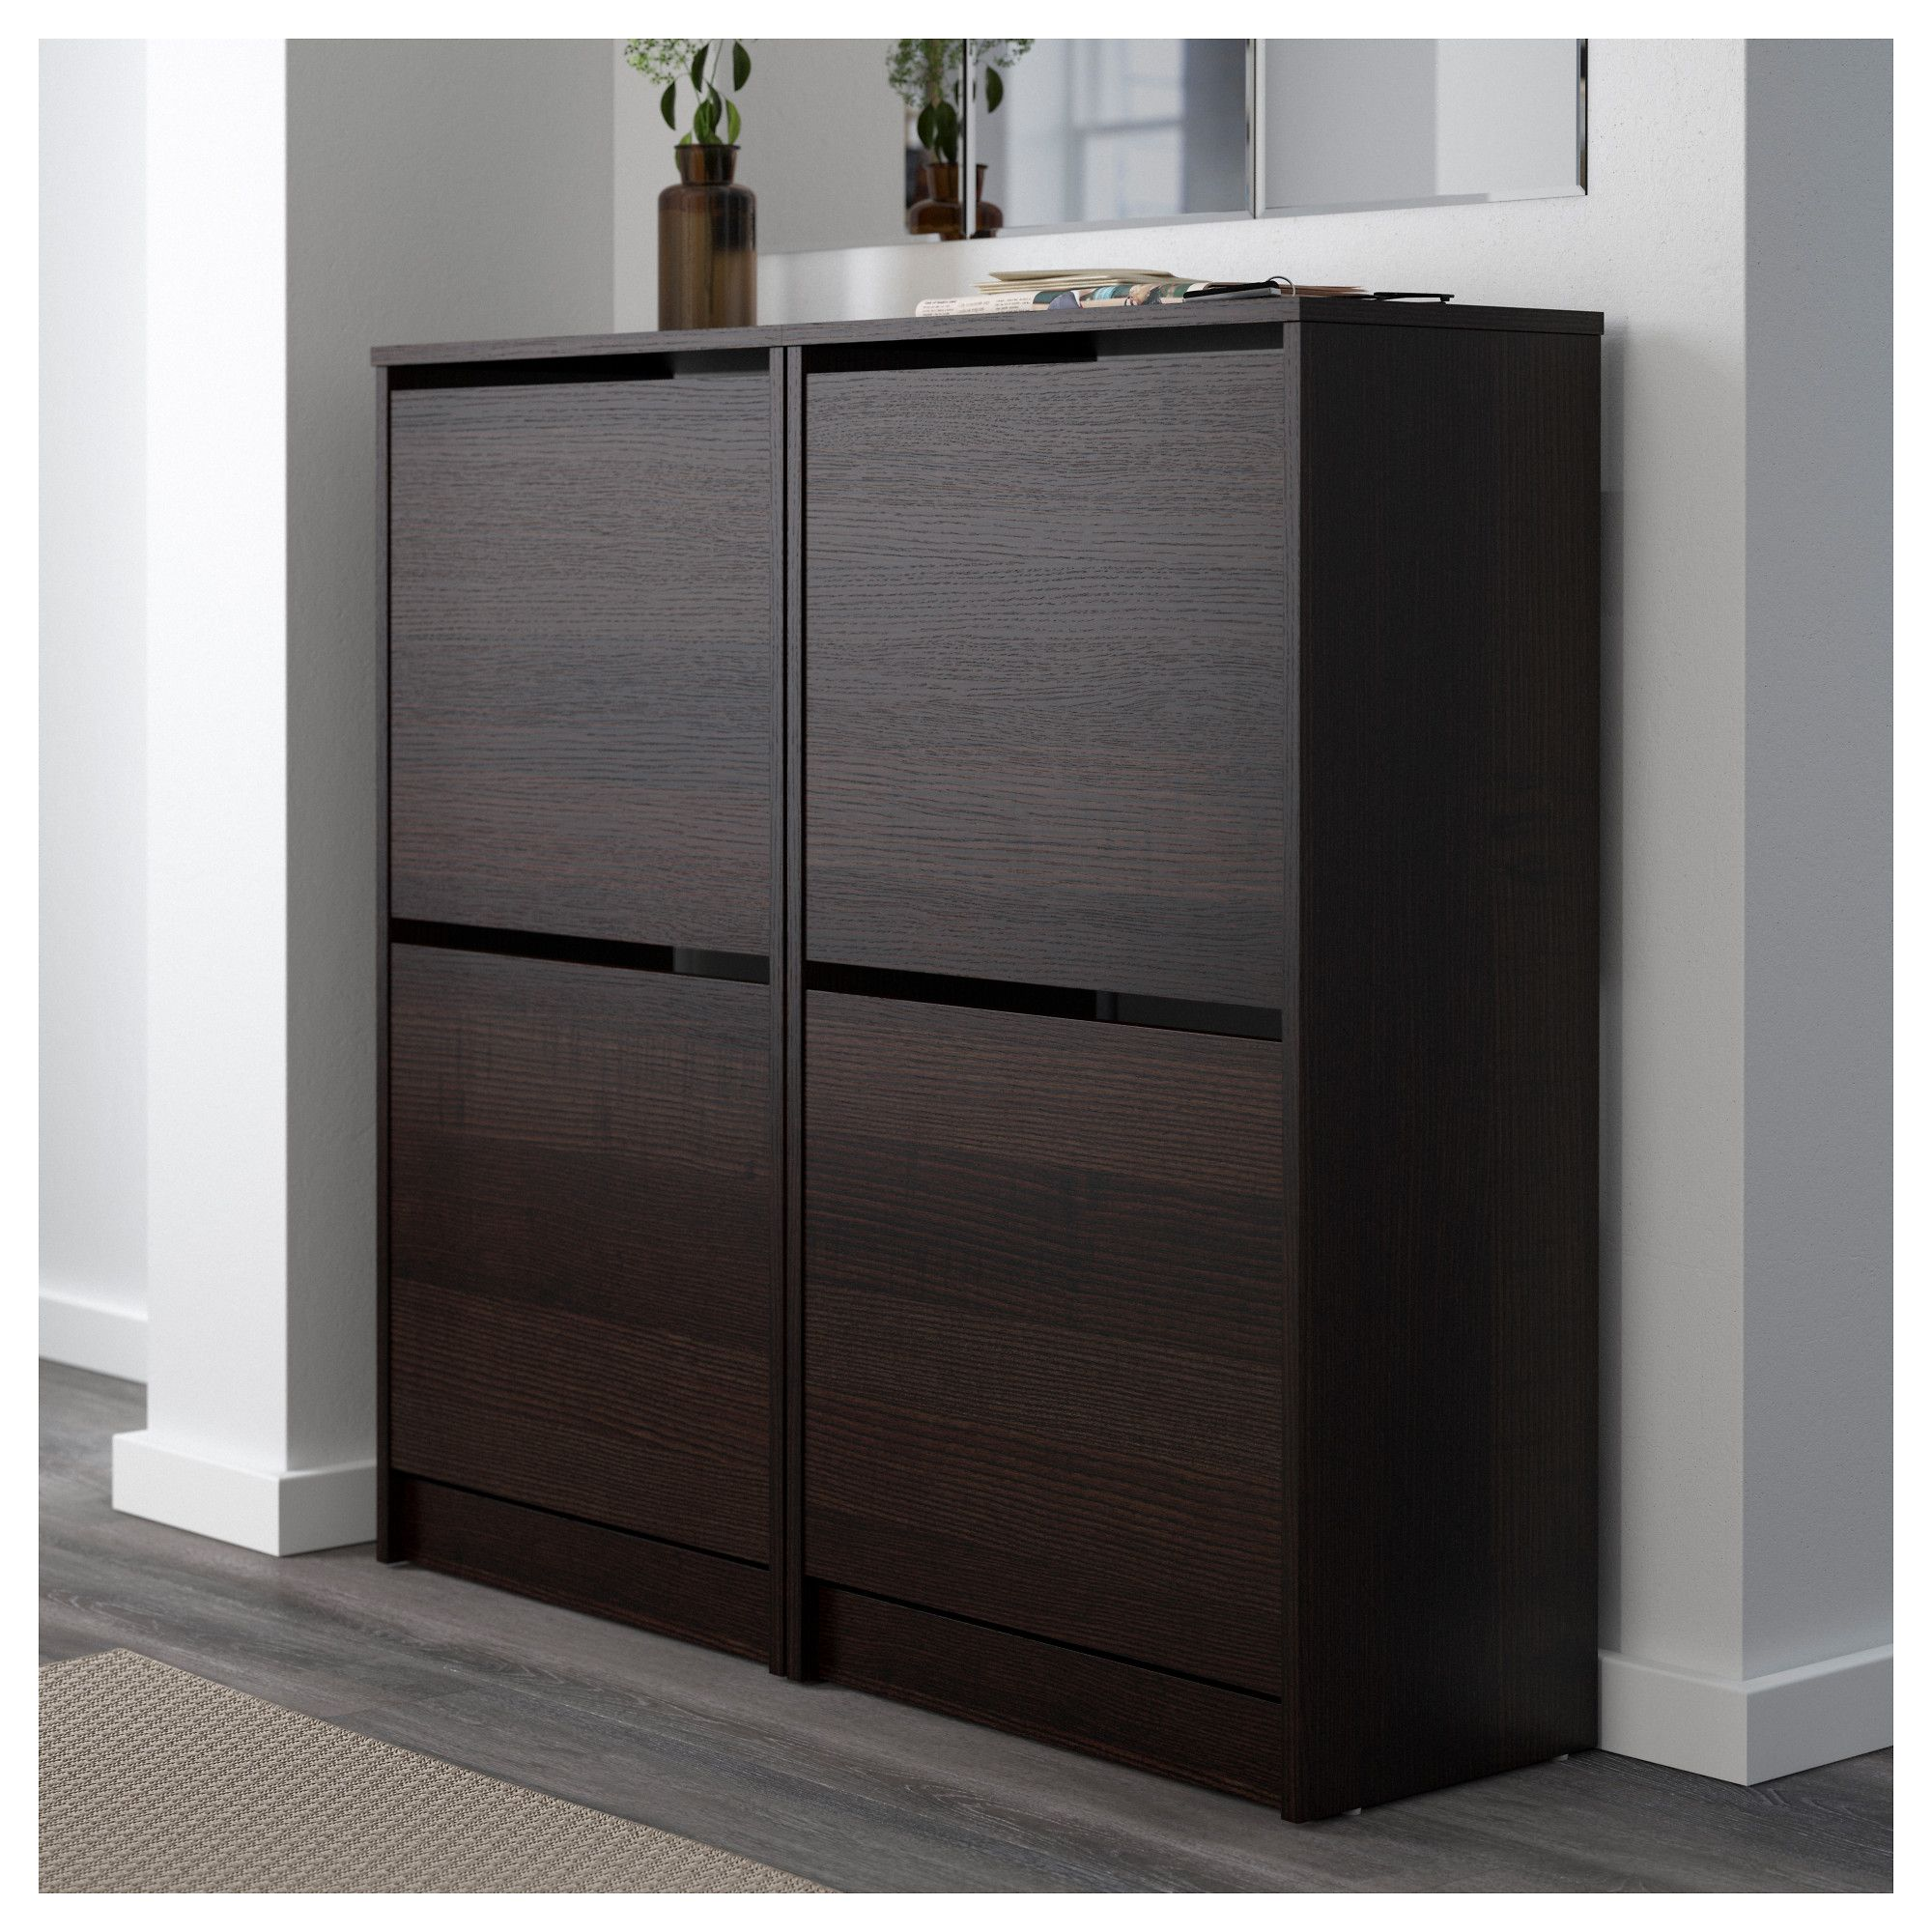 Bissa Armoire A Chaussures 2 Casiers Blanc 49x93 Cm Ikea Meuble Chaussure Meuble Rangement Chaussures Grand Meuble A Chaussure